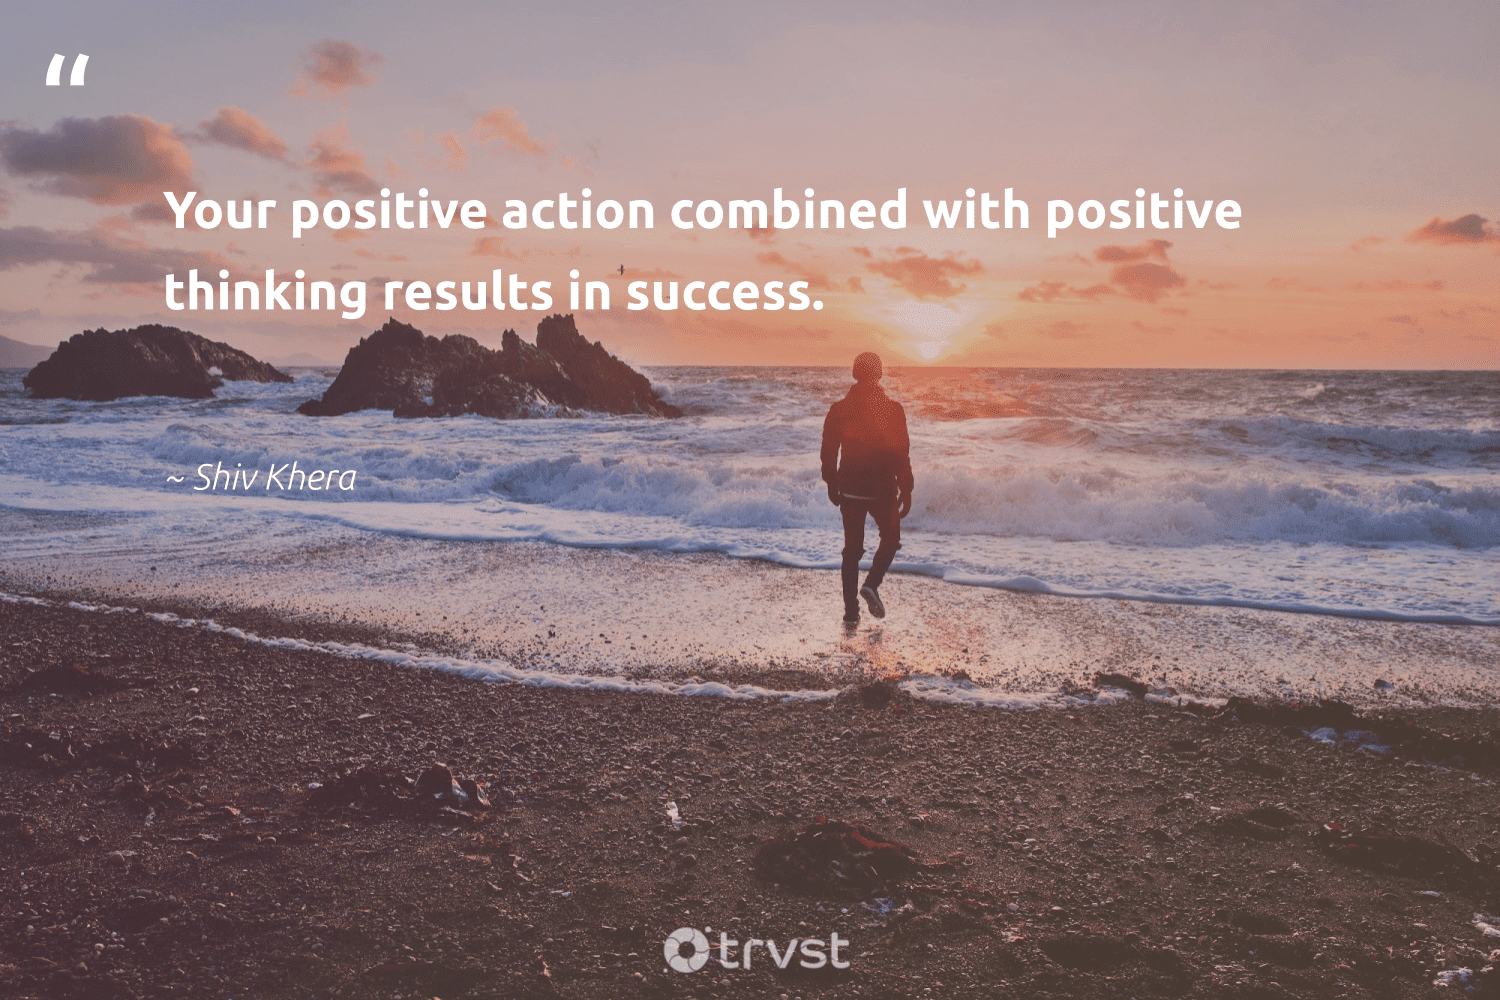 """""""Your positive action combined with positive thinking results in success.""""  - Shiv Khera #trvst #quotes #results #success #motivation #goals #softskills #socialimpact #focus #acheivement #nevergiveup #socialchange"""